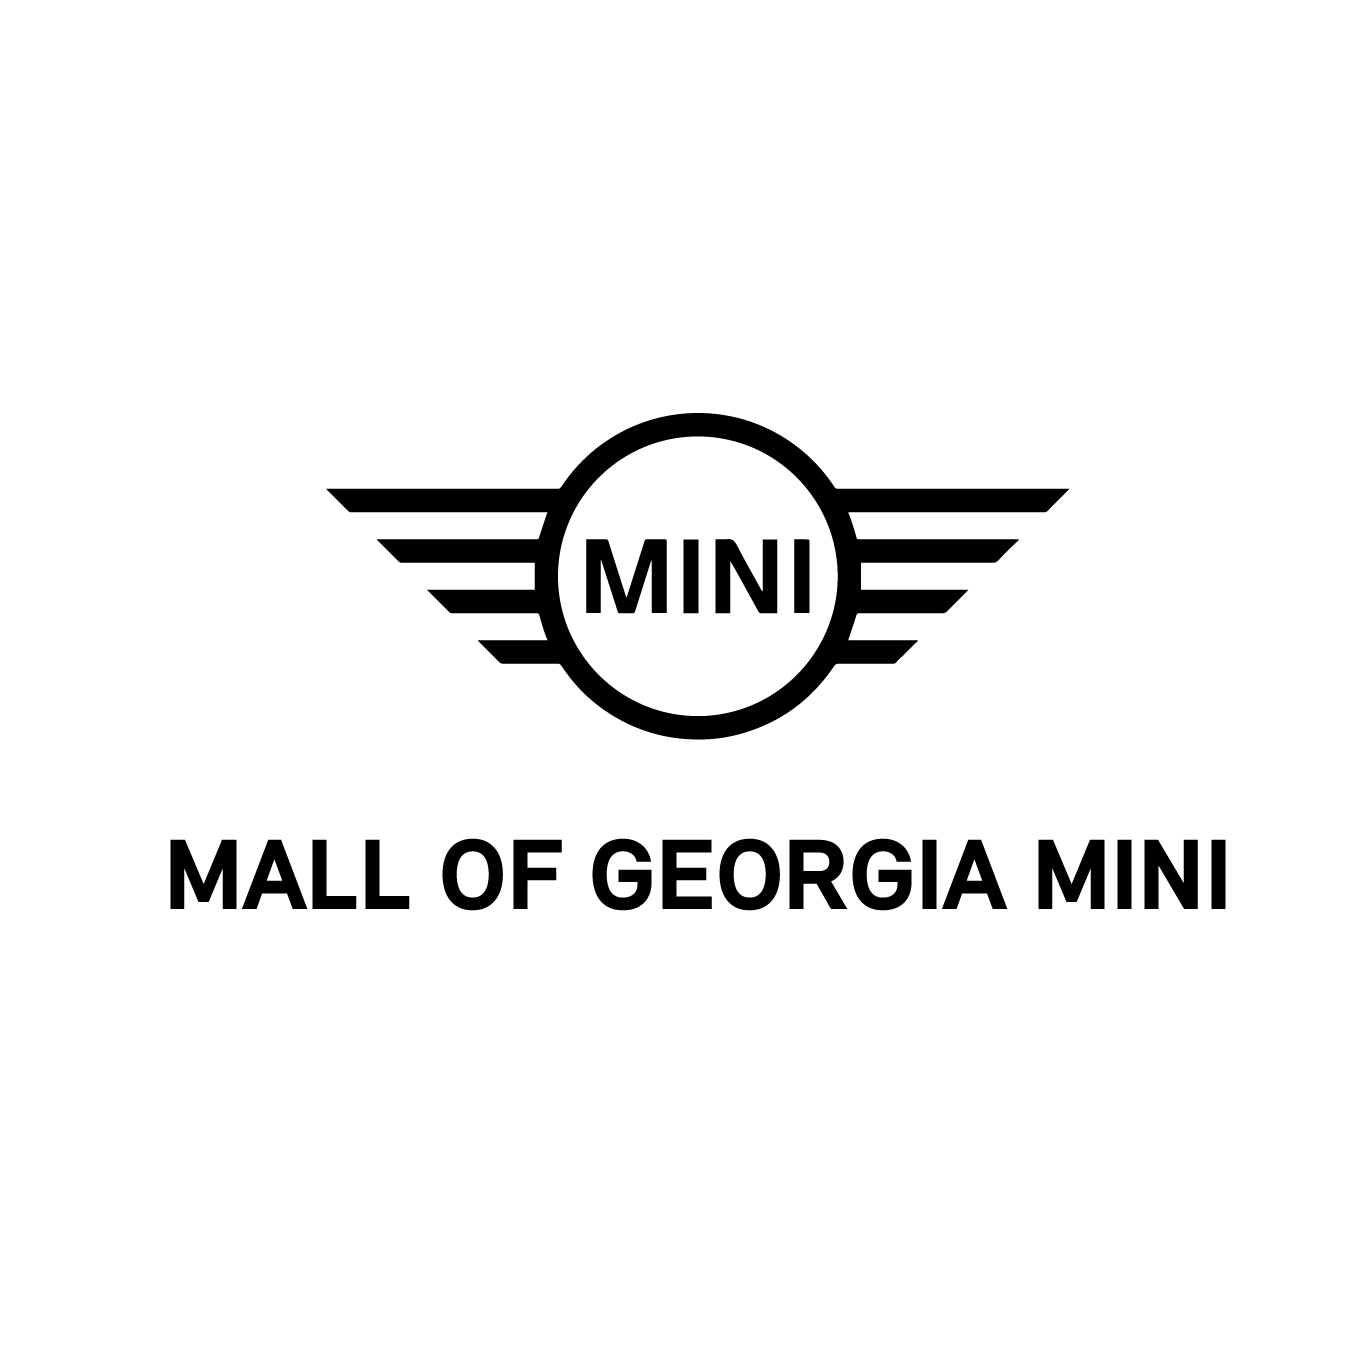 Mall of Georgia MINI